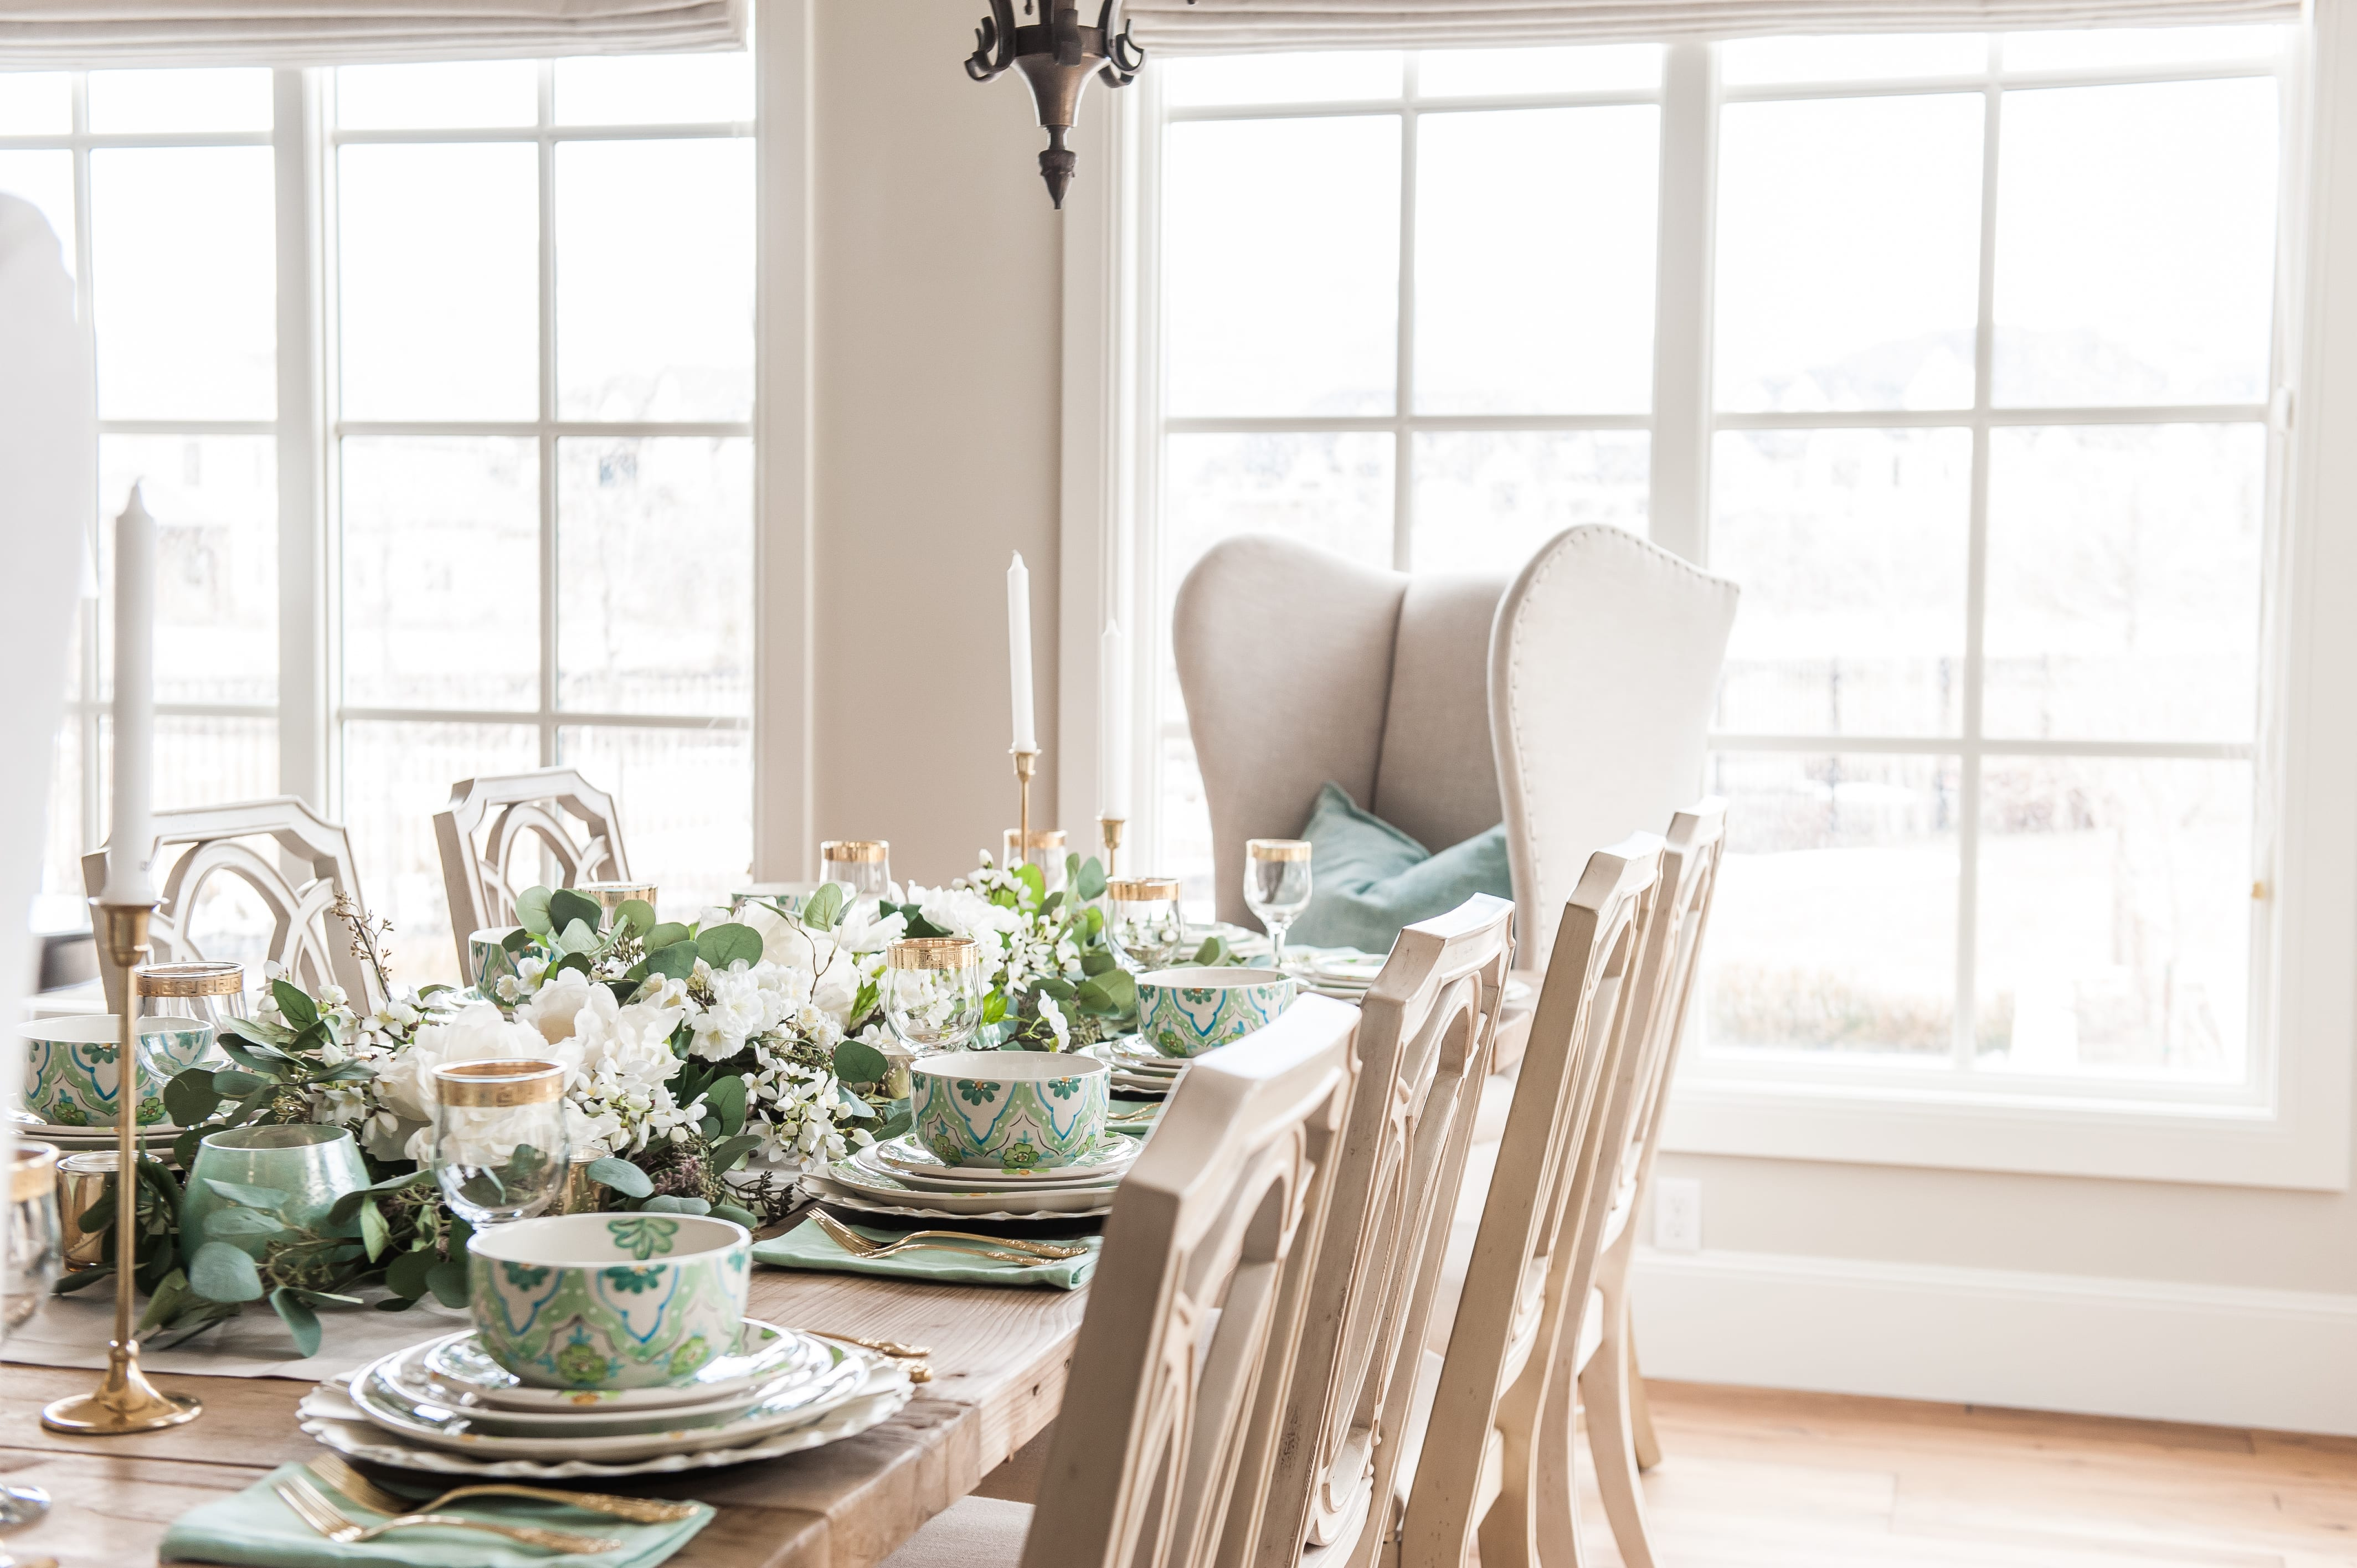 tablescape for easter spring saint Patricks Day